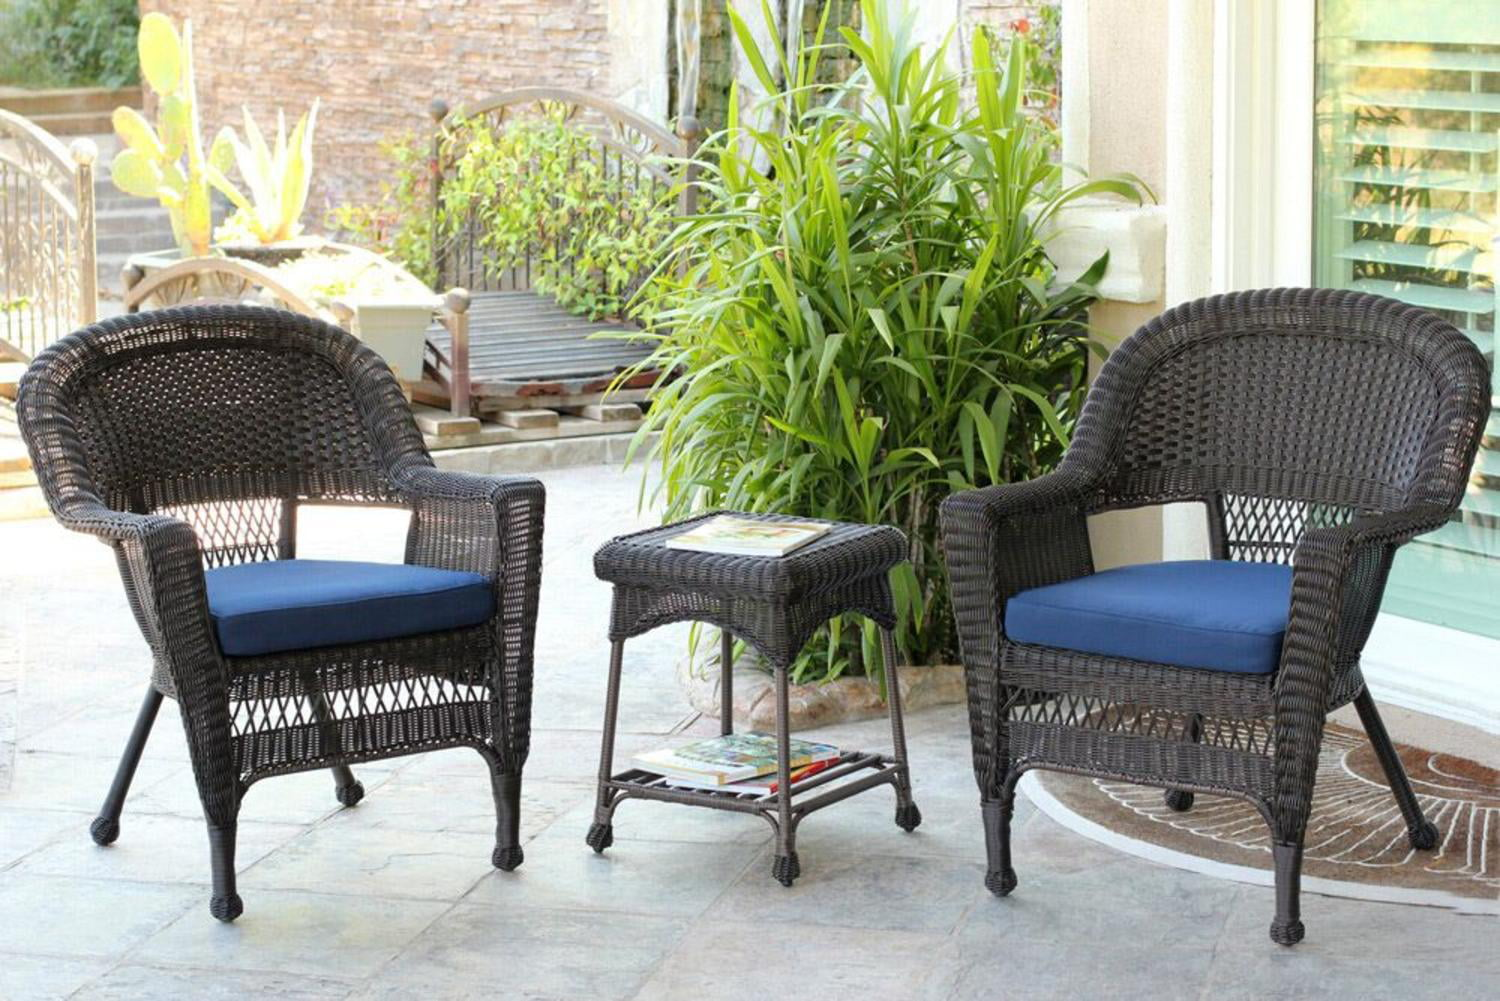 product today corvus oreanne patio sets shipping free outdoor overstock brown set furniture piece home garden wicker